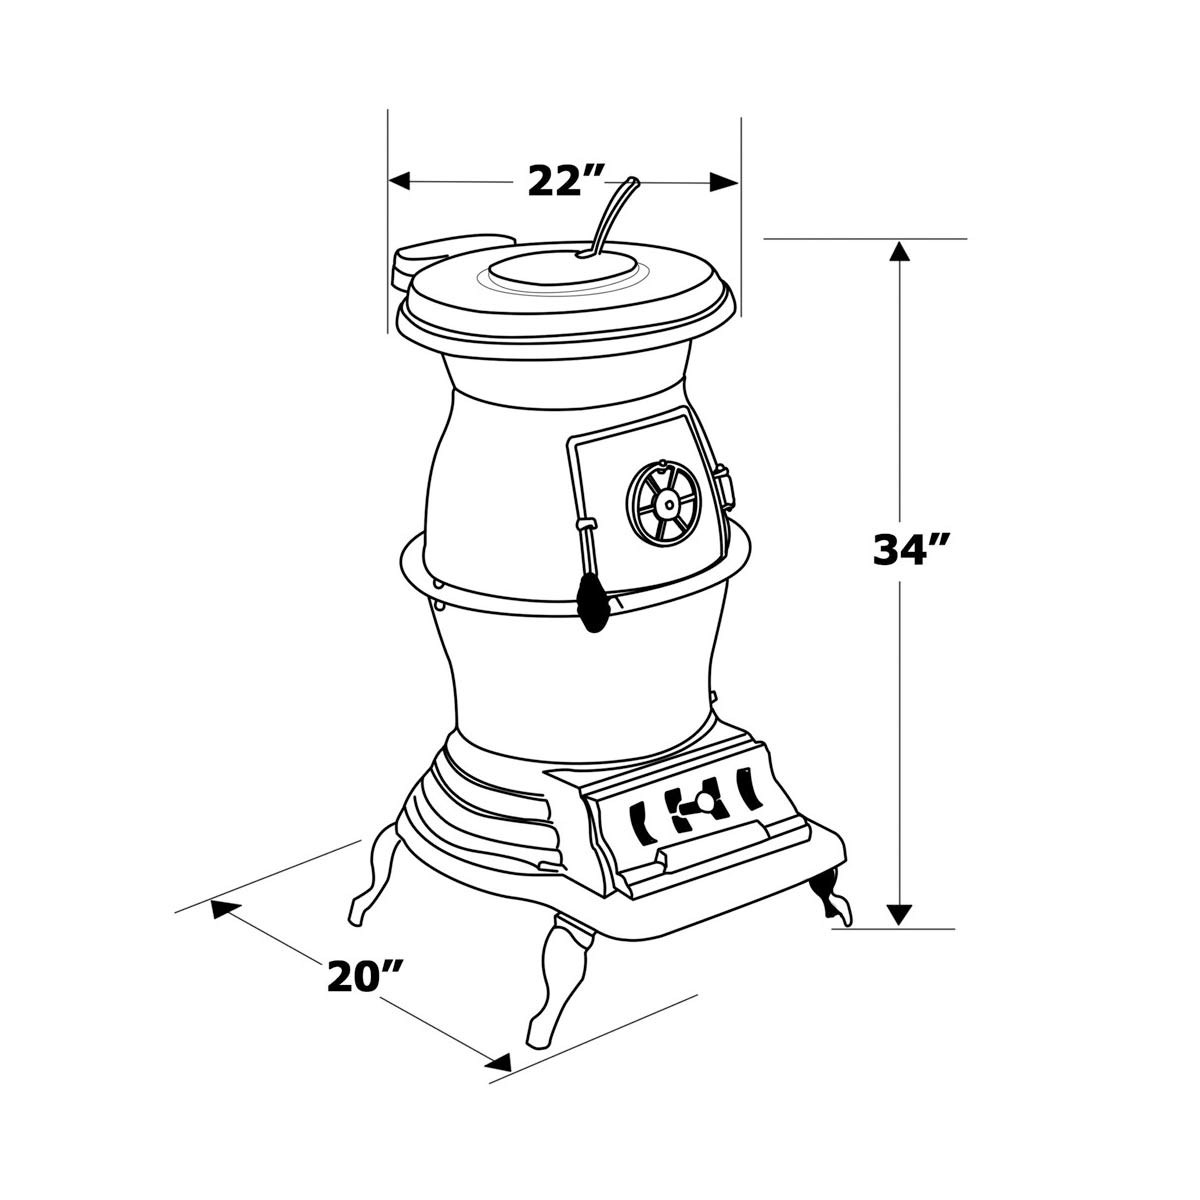 The Best Free Stove Drawing Images Download From 50 Free Drawings Of Stove At Getdrawings